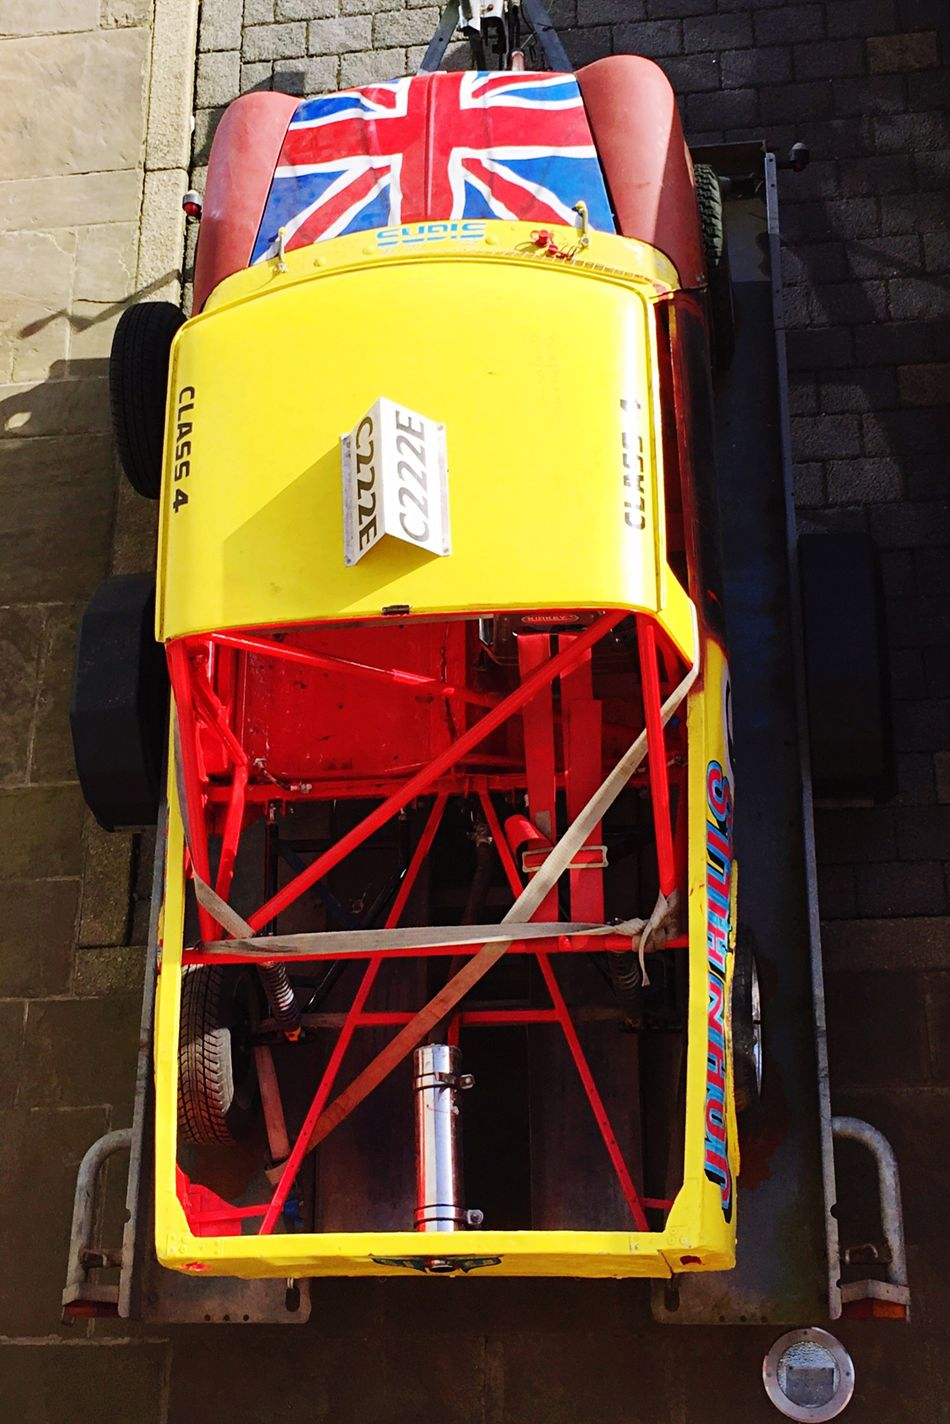 Anyone for a race! No People Day Text Outdoors Car Mini Red Blue Yellow Union Jack Flag Racing Detailed Trailer Framework Decals Colourful All Ready In Need Of Work Bright